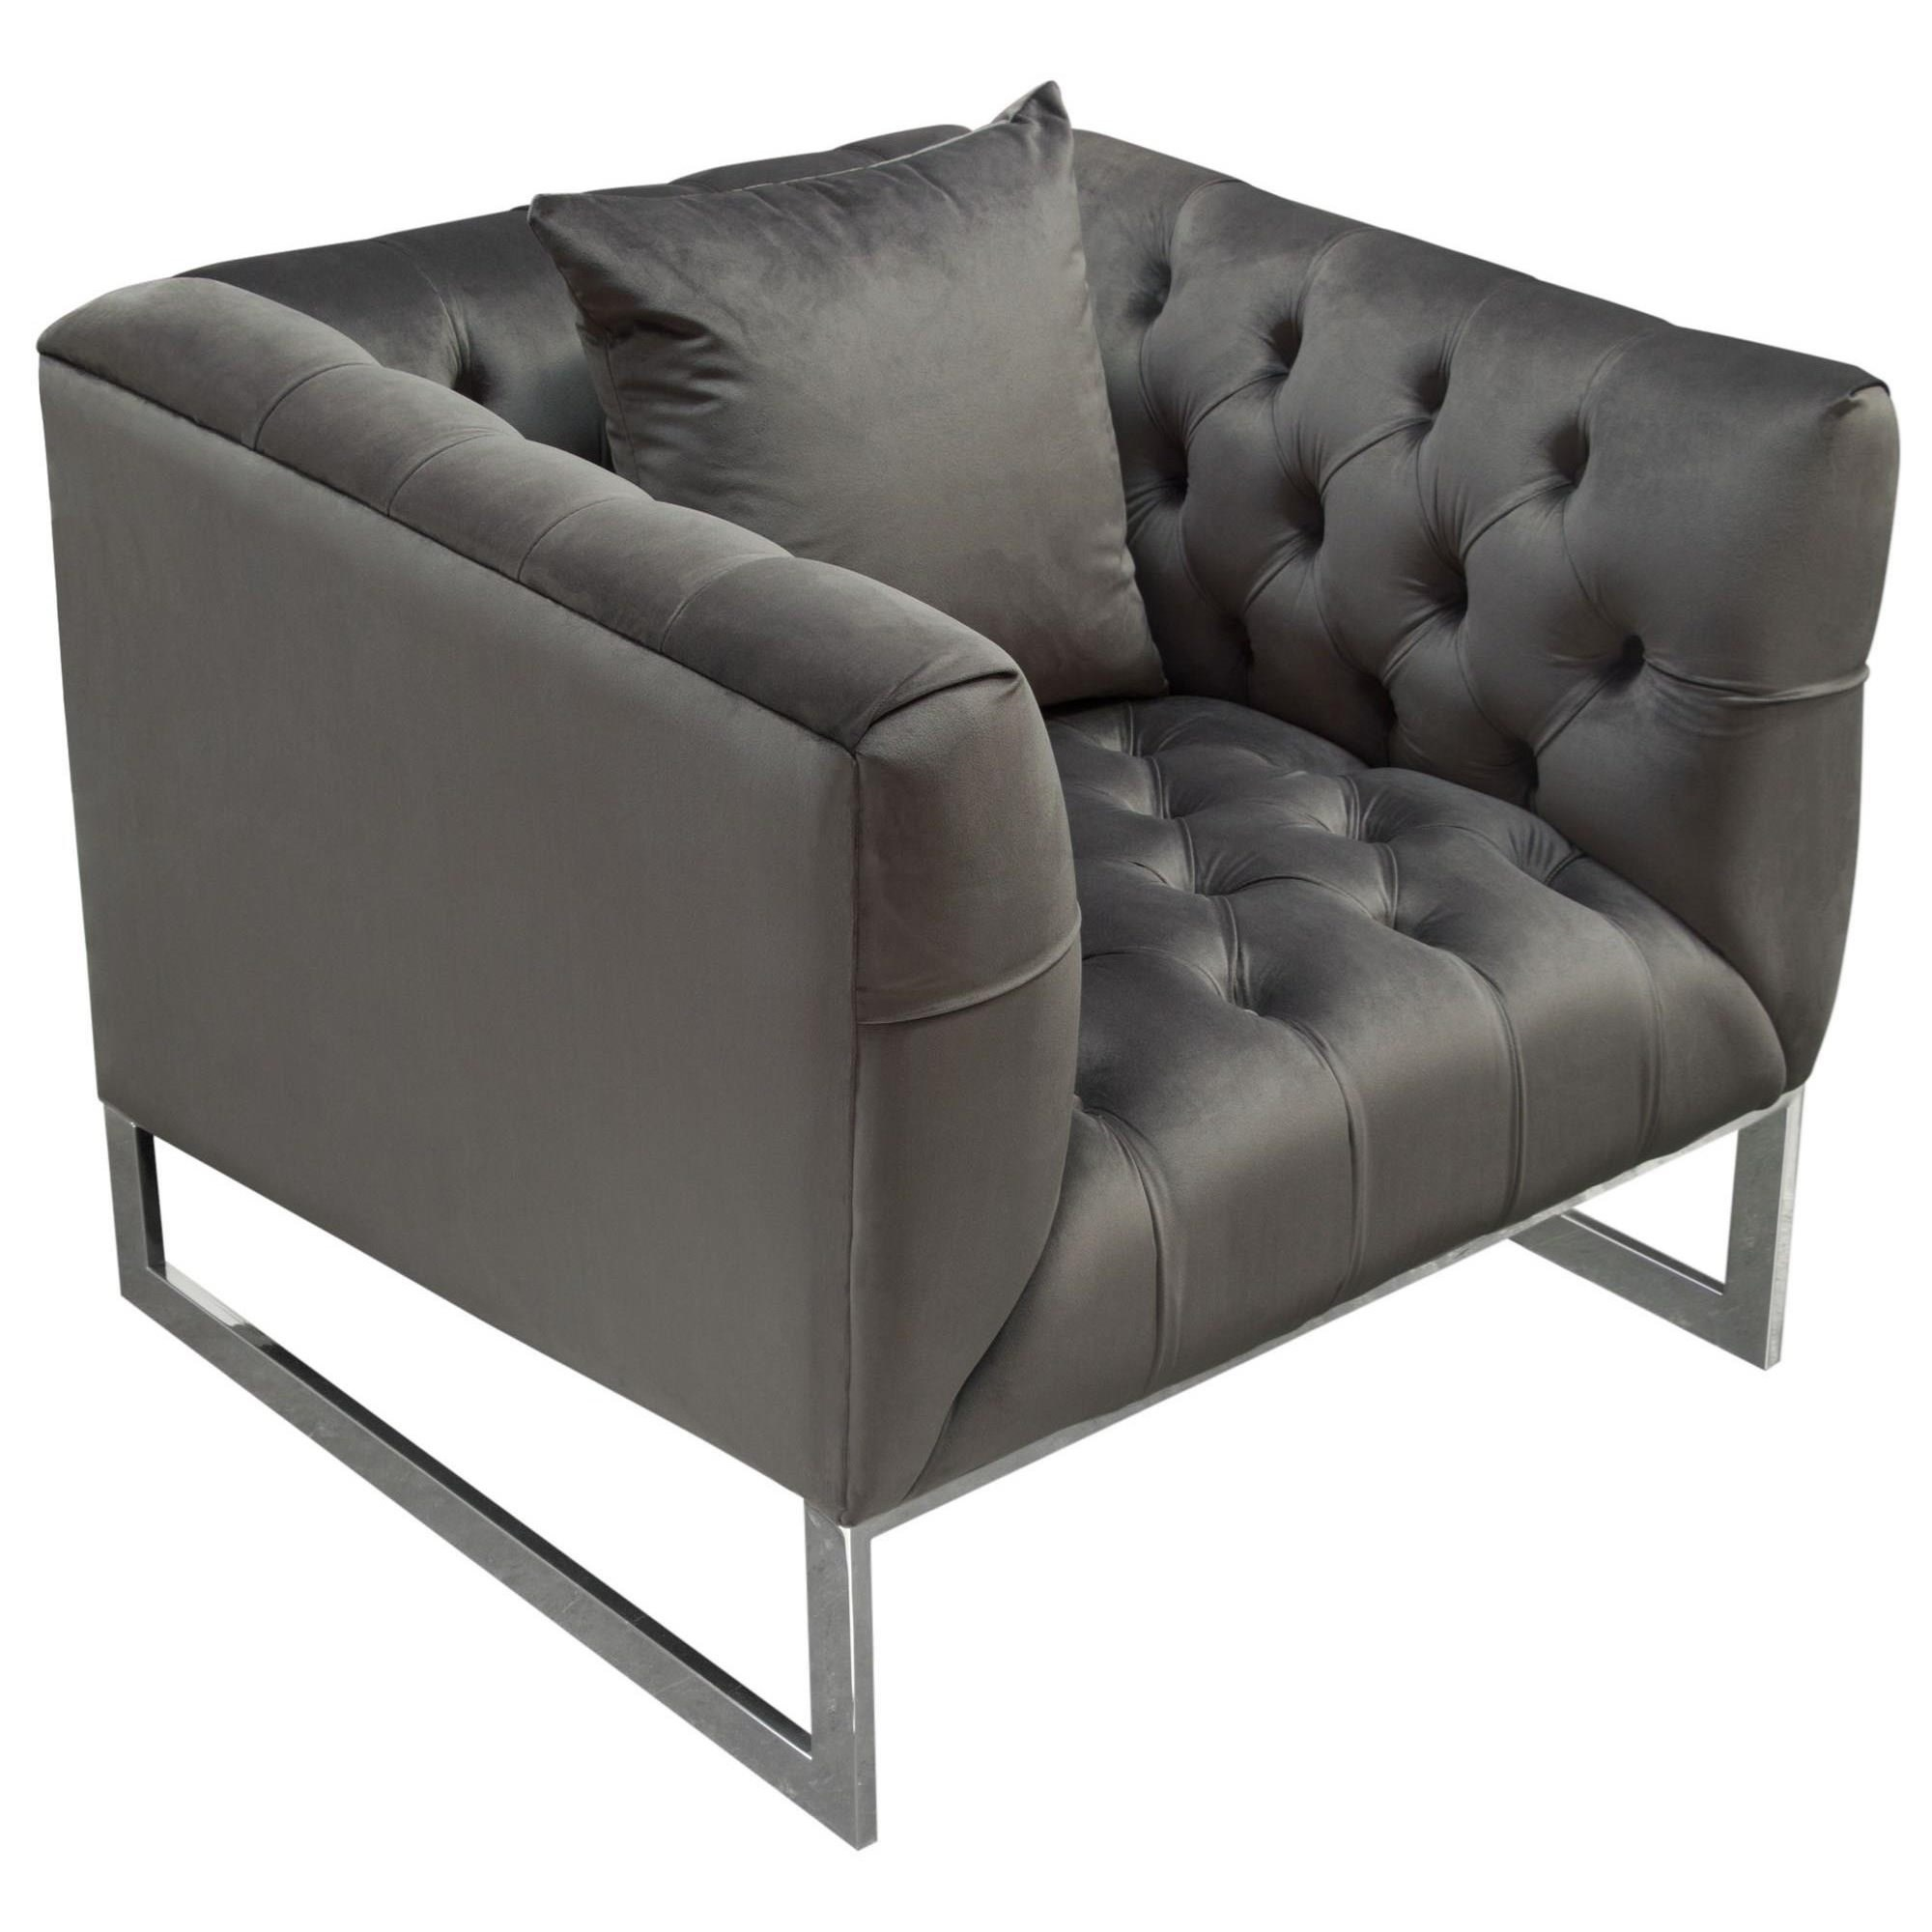 Crawford Chair by Diamond Sofa at Red Knot